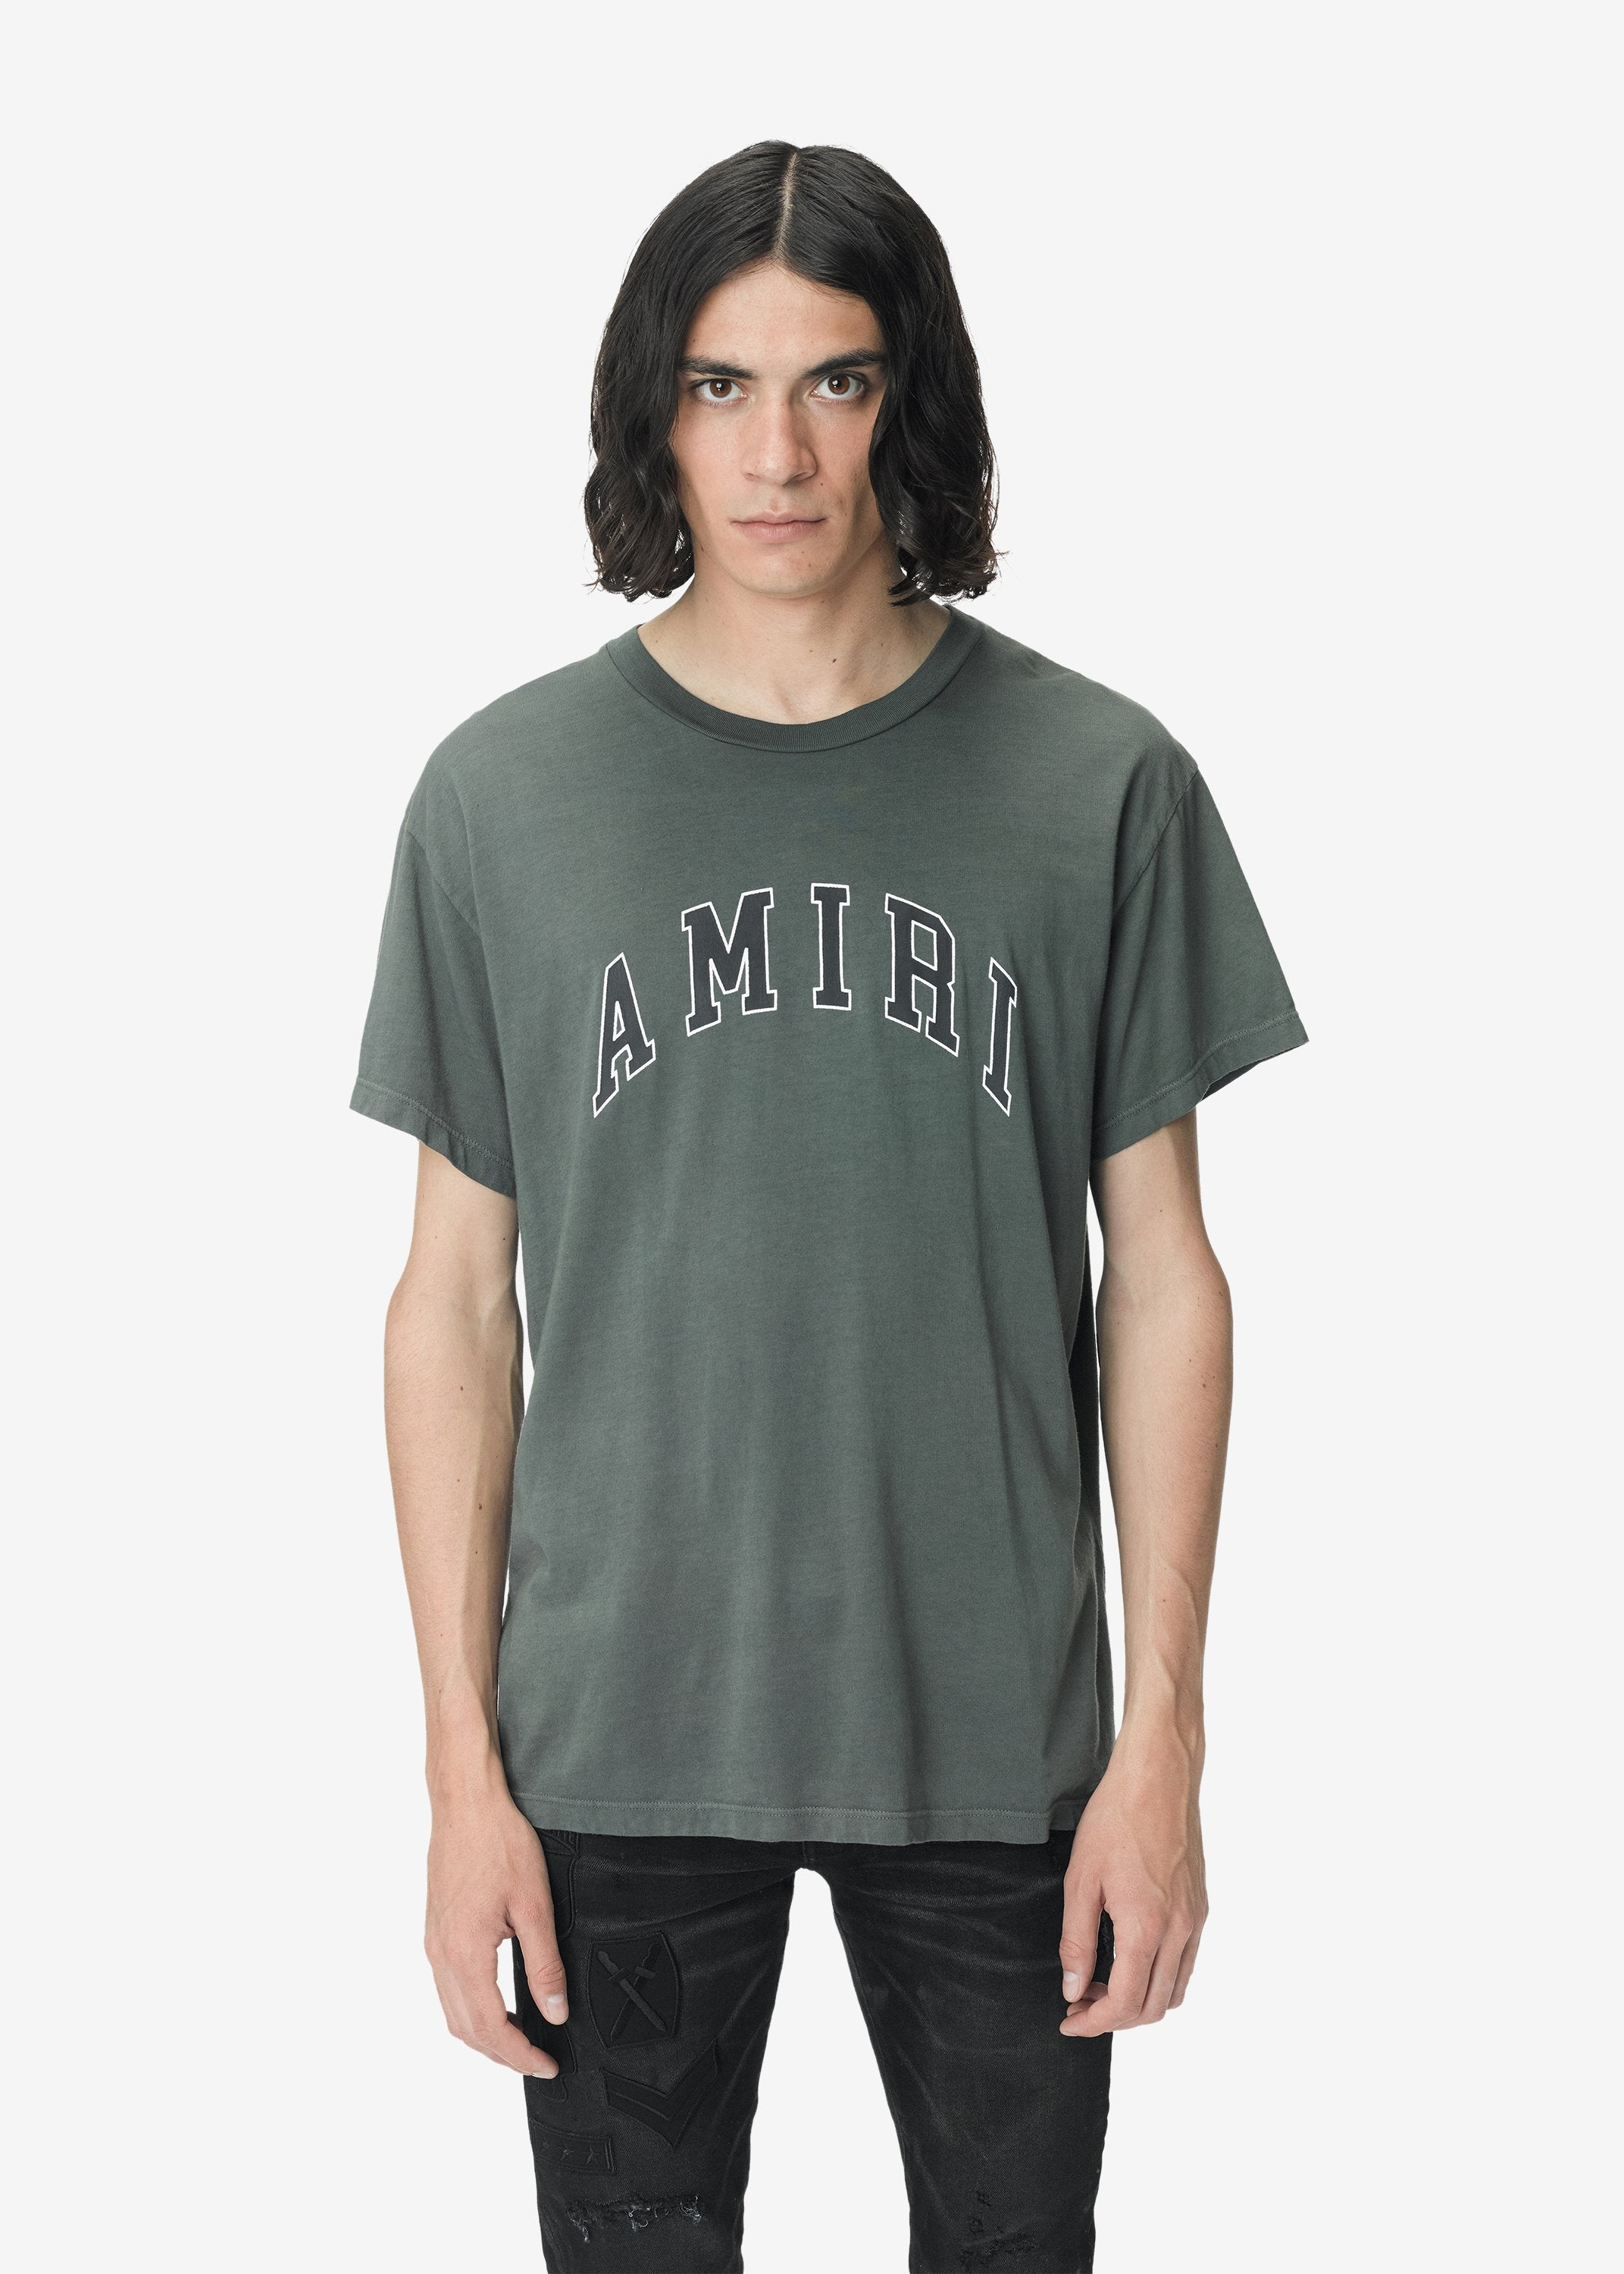 college-amiri-tee-military-green-image-1